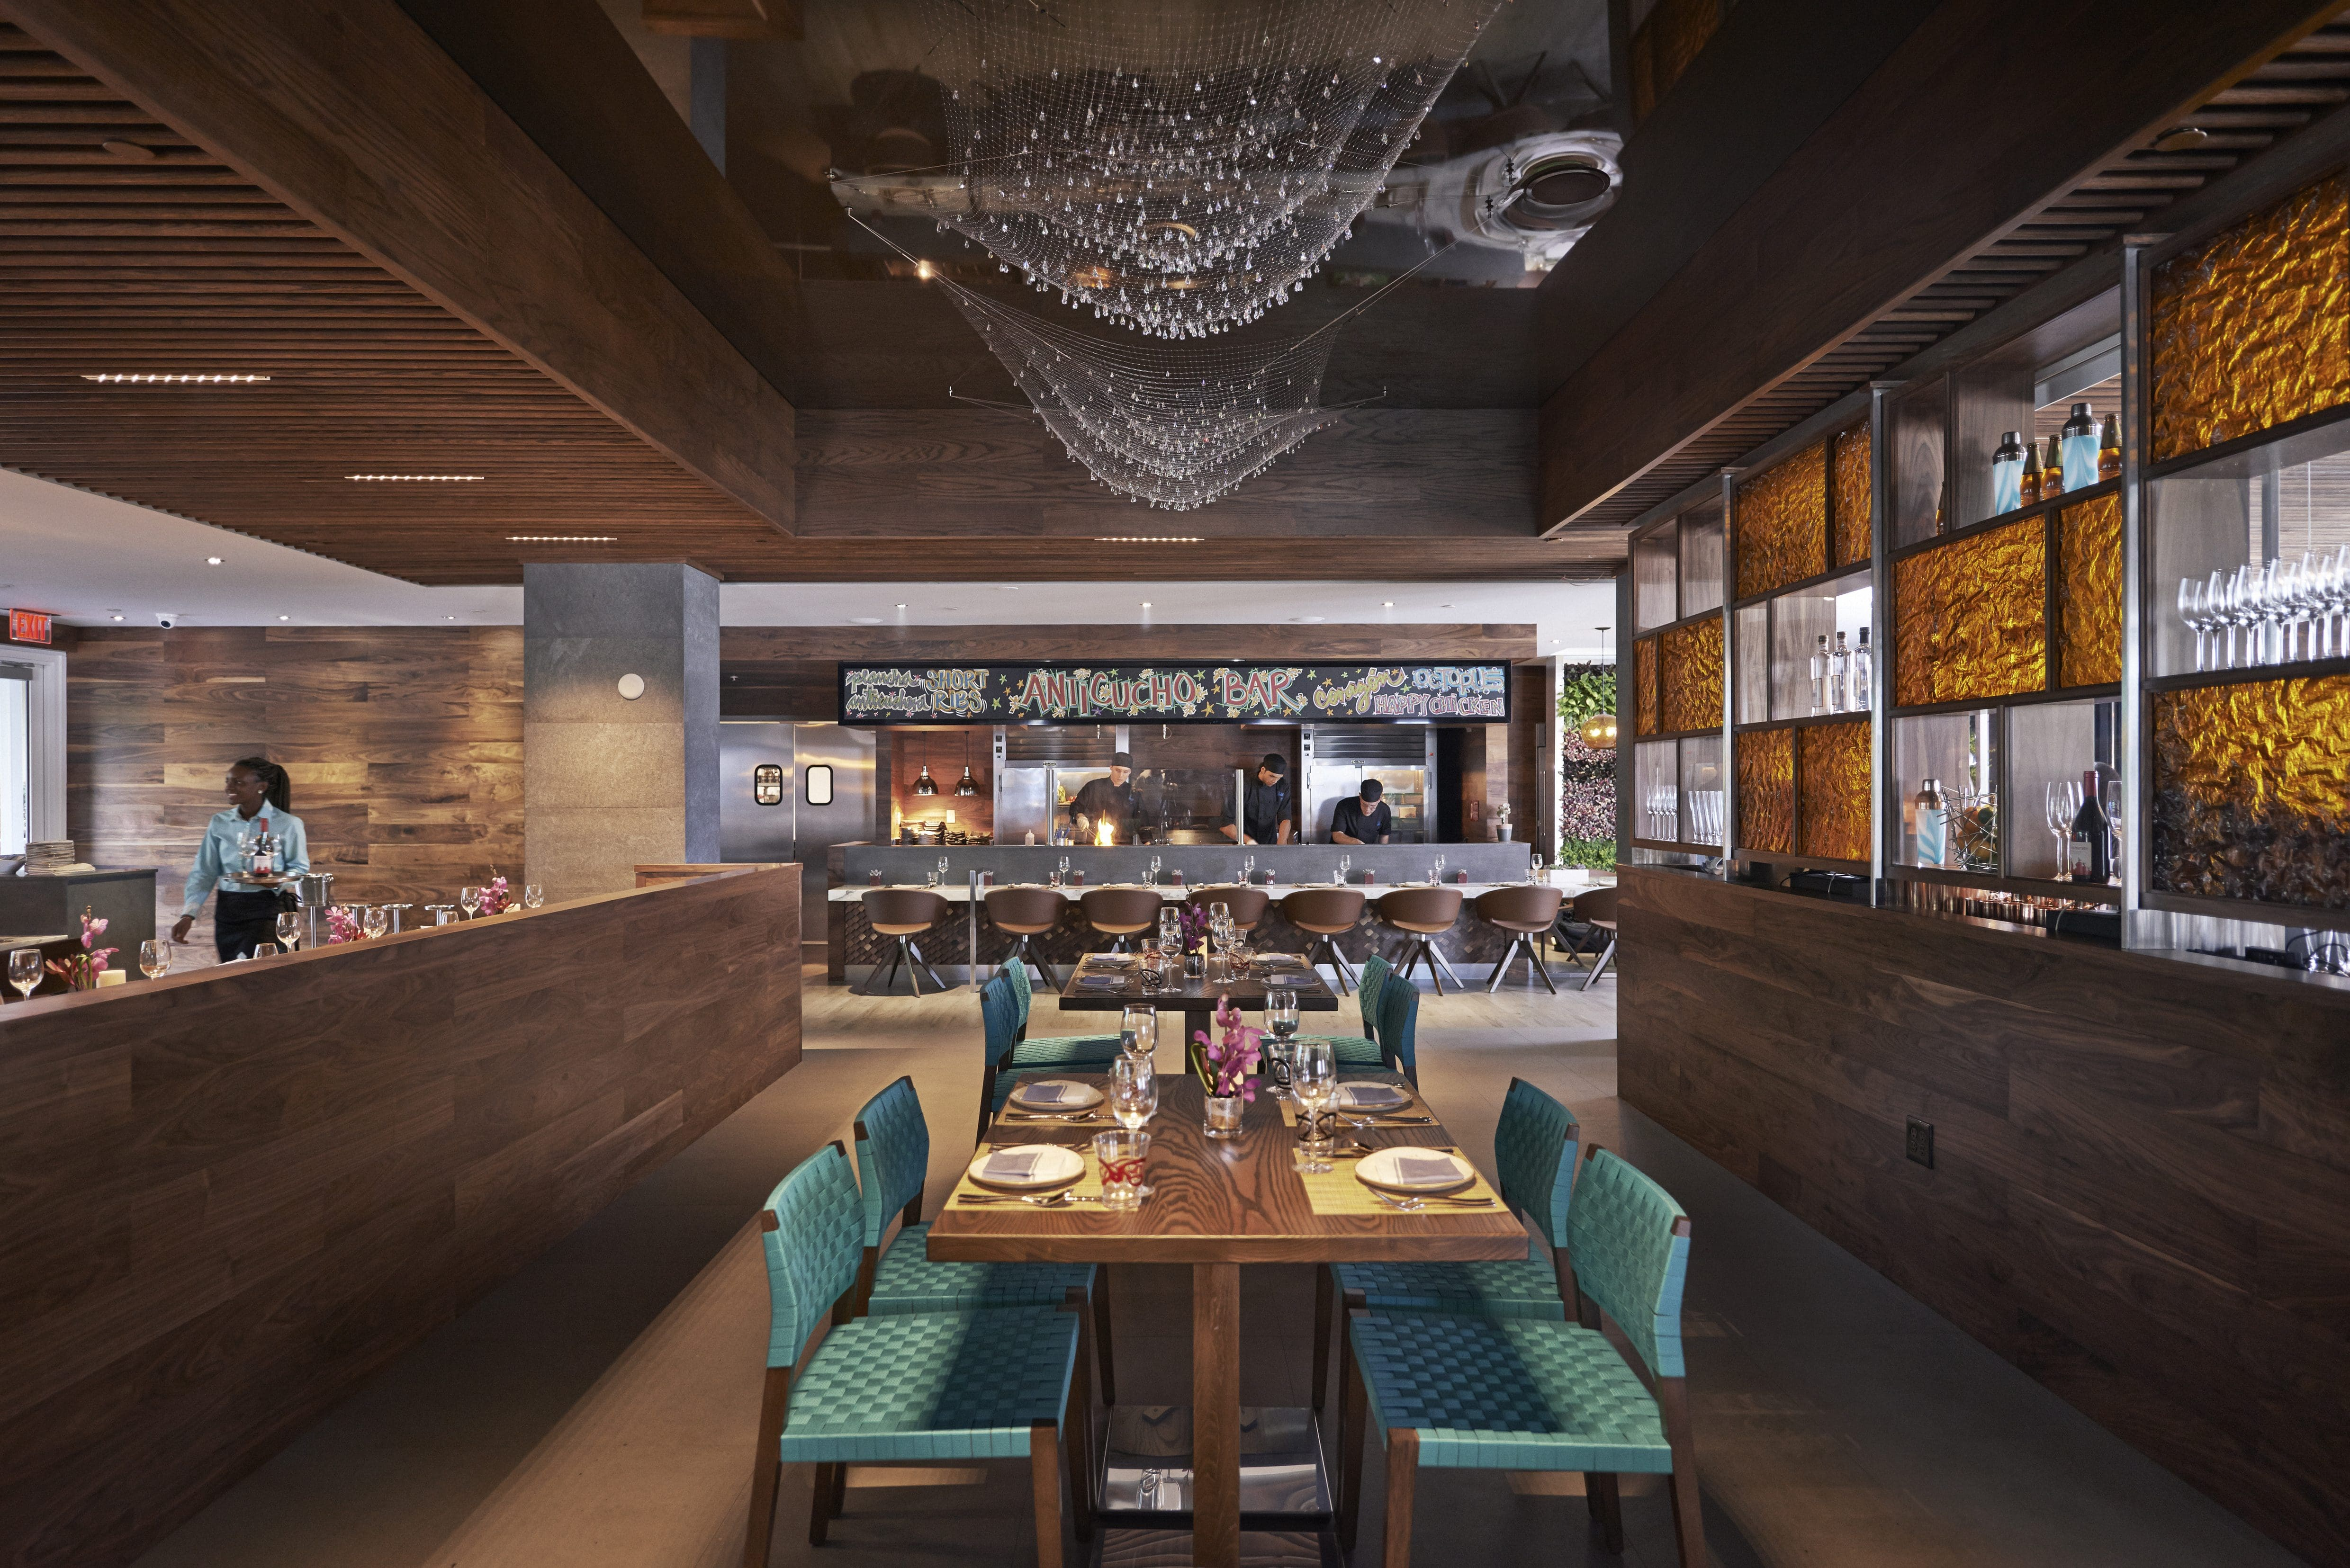 Team Deutsch La Mar By Gaston Acurio - Restaurants In Brickell